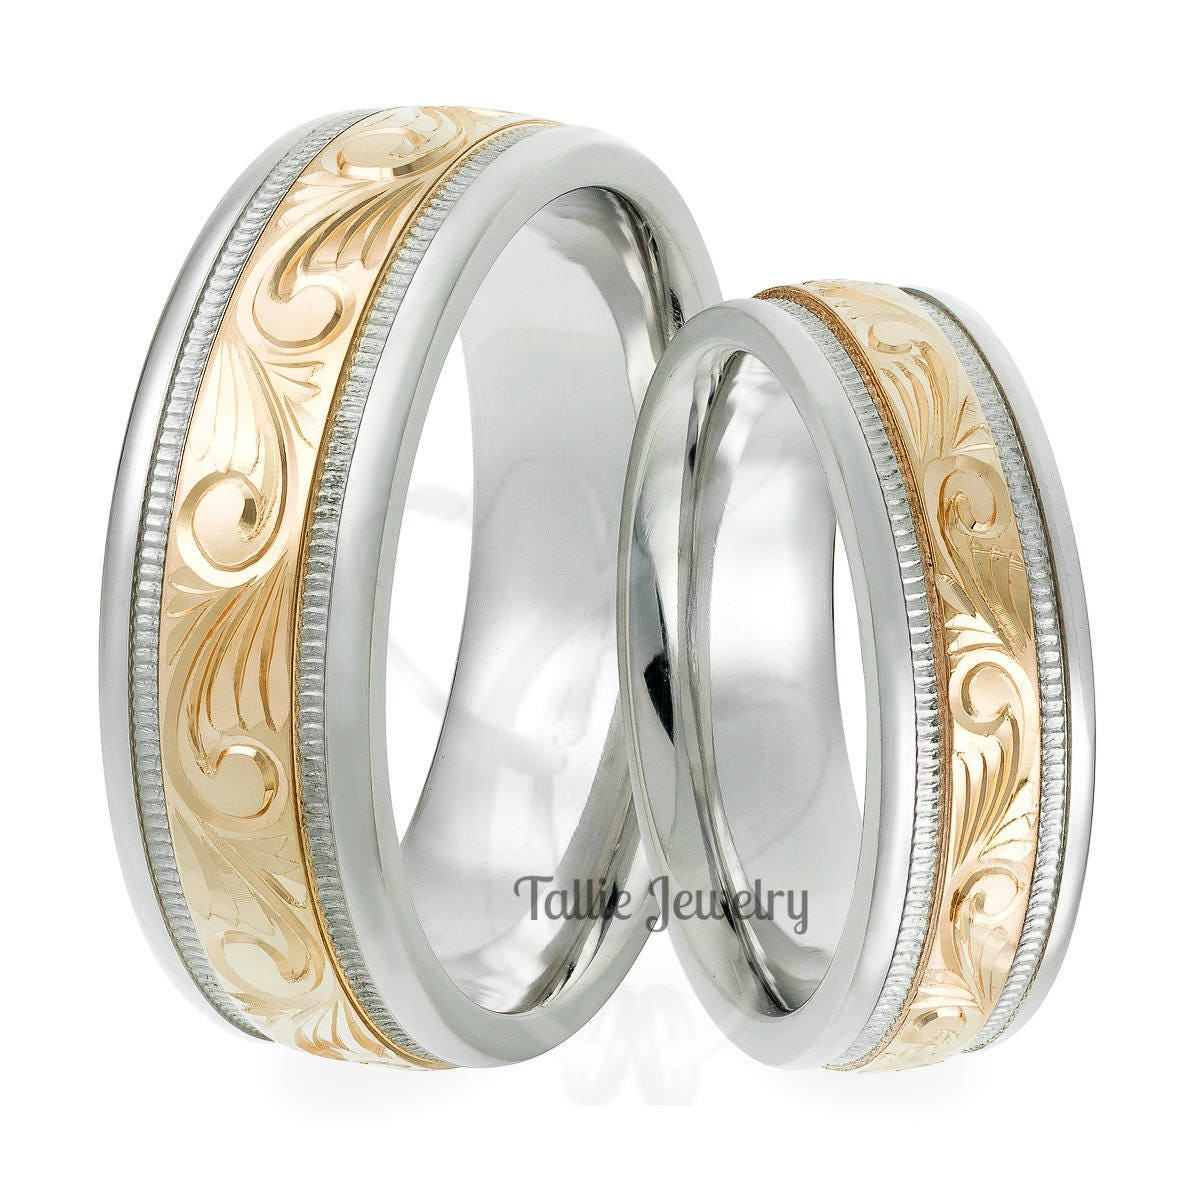 hand engraved matching wedding rings,14k two tone gold his & hers